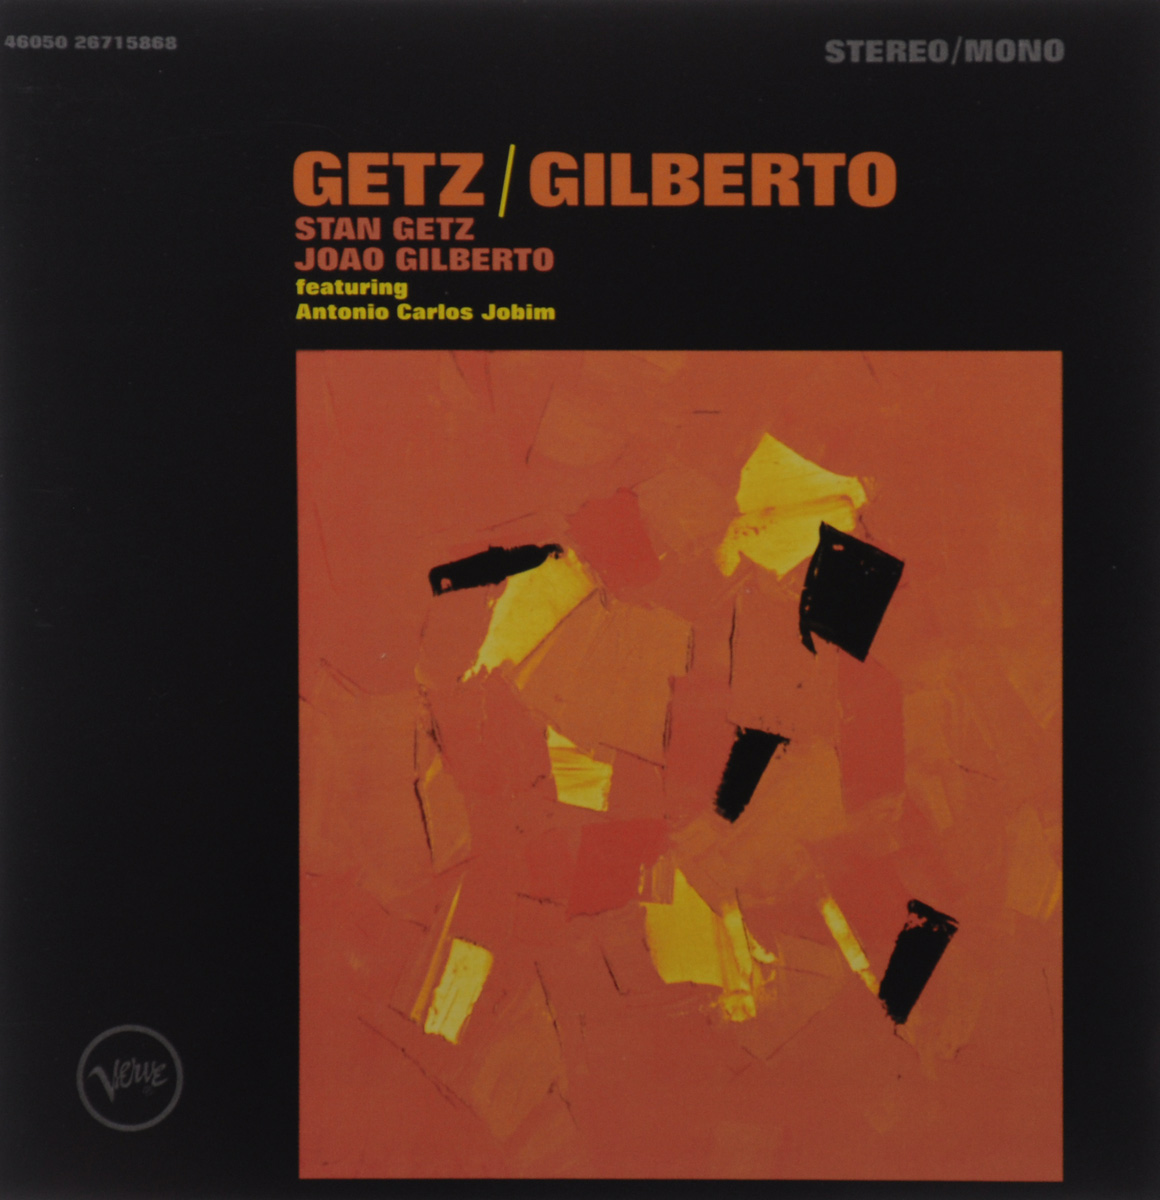 Стэн Гетц,Жоао Жильберто,Антонио Карлос Жобим Getz / Gilberto. Stan Getz and Joao Gilberto featuring Antonio Carlos Jobim